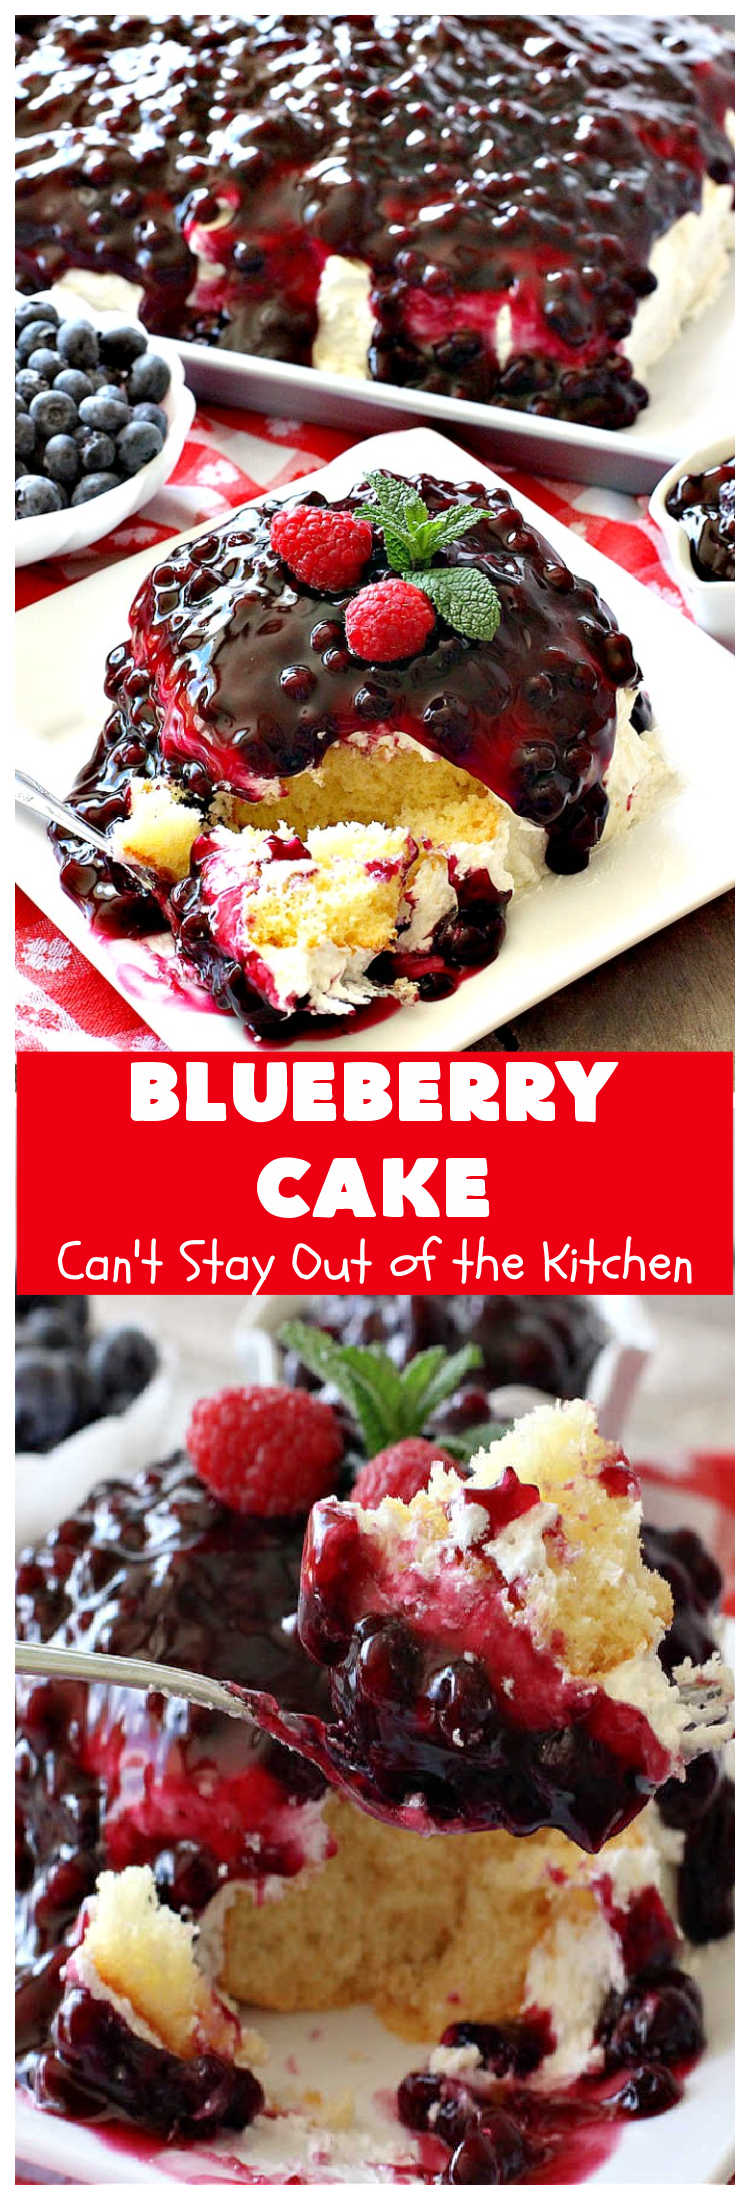 Blueberry Cake | Can't Stay Out of the Kitchen | this luscious #cake #recipe uses only 8 ingredients. It's really easy but so incredibly scrumptious. It has a #CreamCheese frosting & it's covered with #BlueberryPieFilling. Perfect for #holidays like #MothersDay, #FathersDay, #MemorialDay or #FourthofJuly too. #dessert #blueberry #BlueberryCake